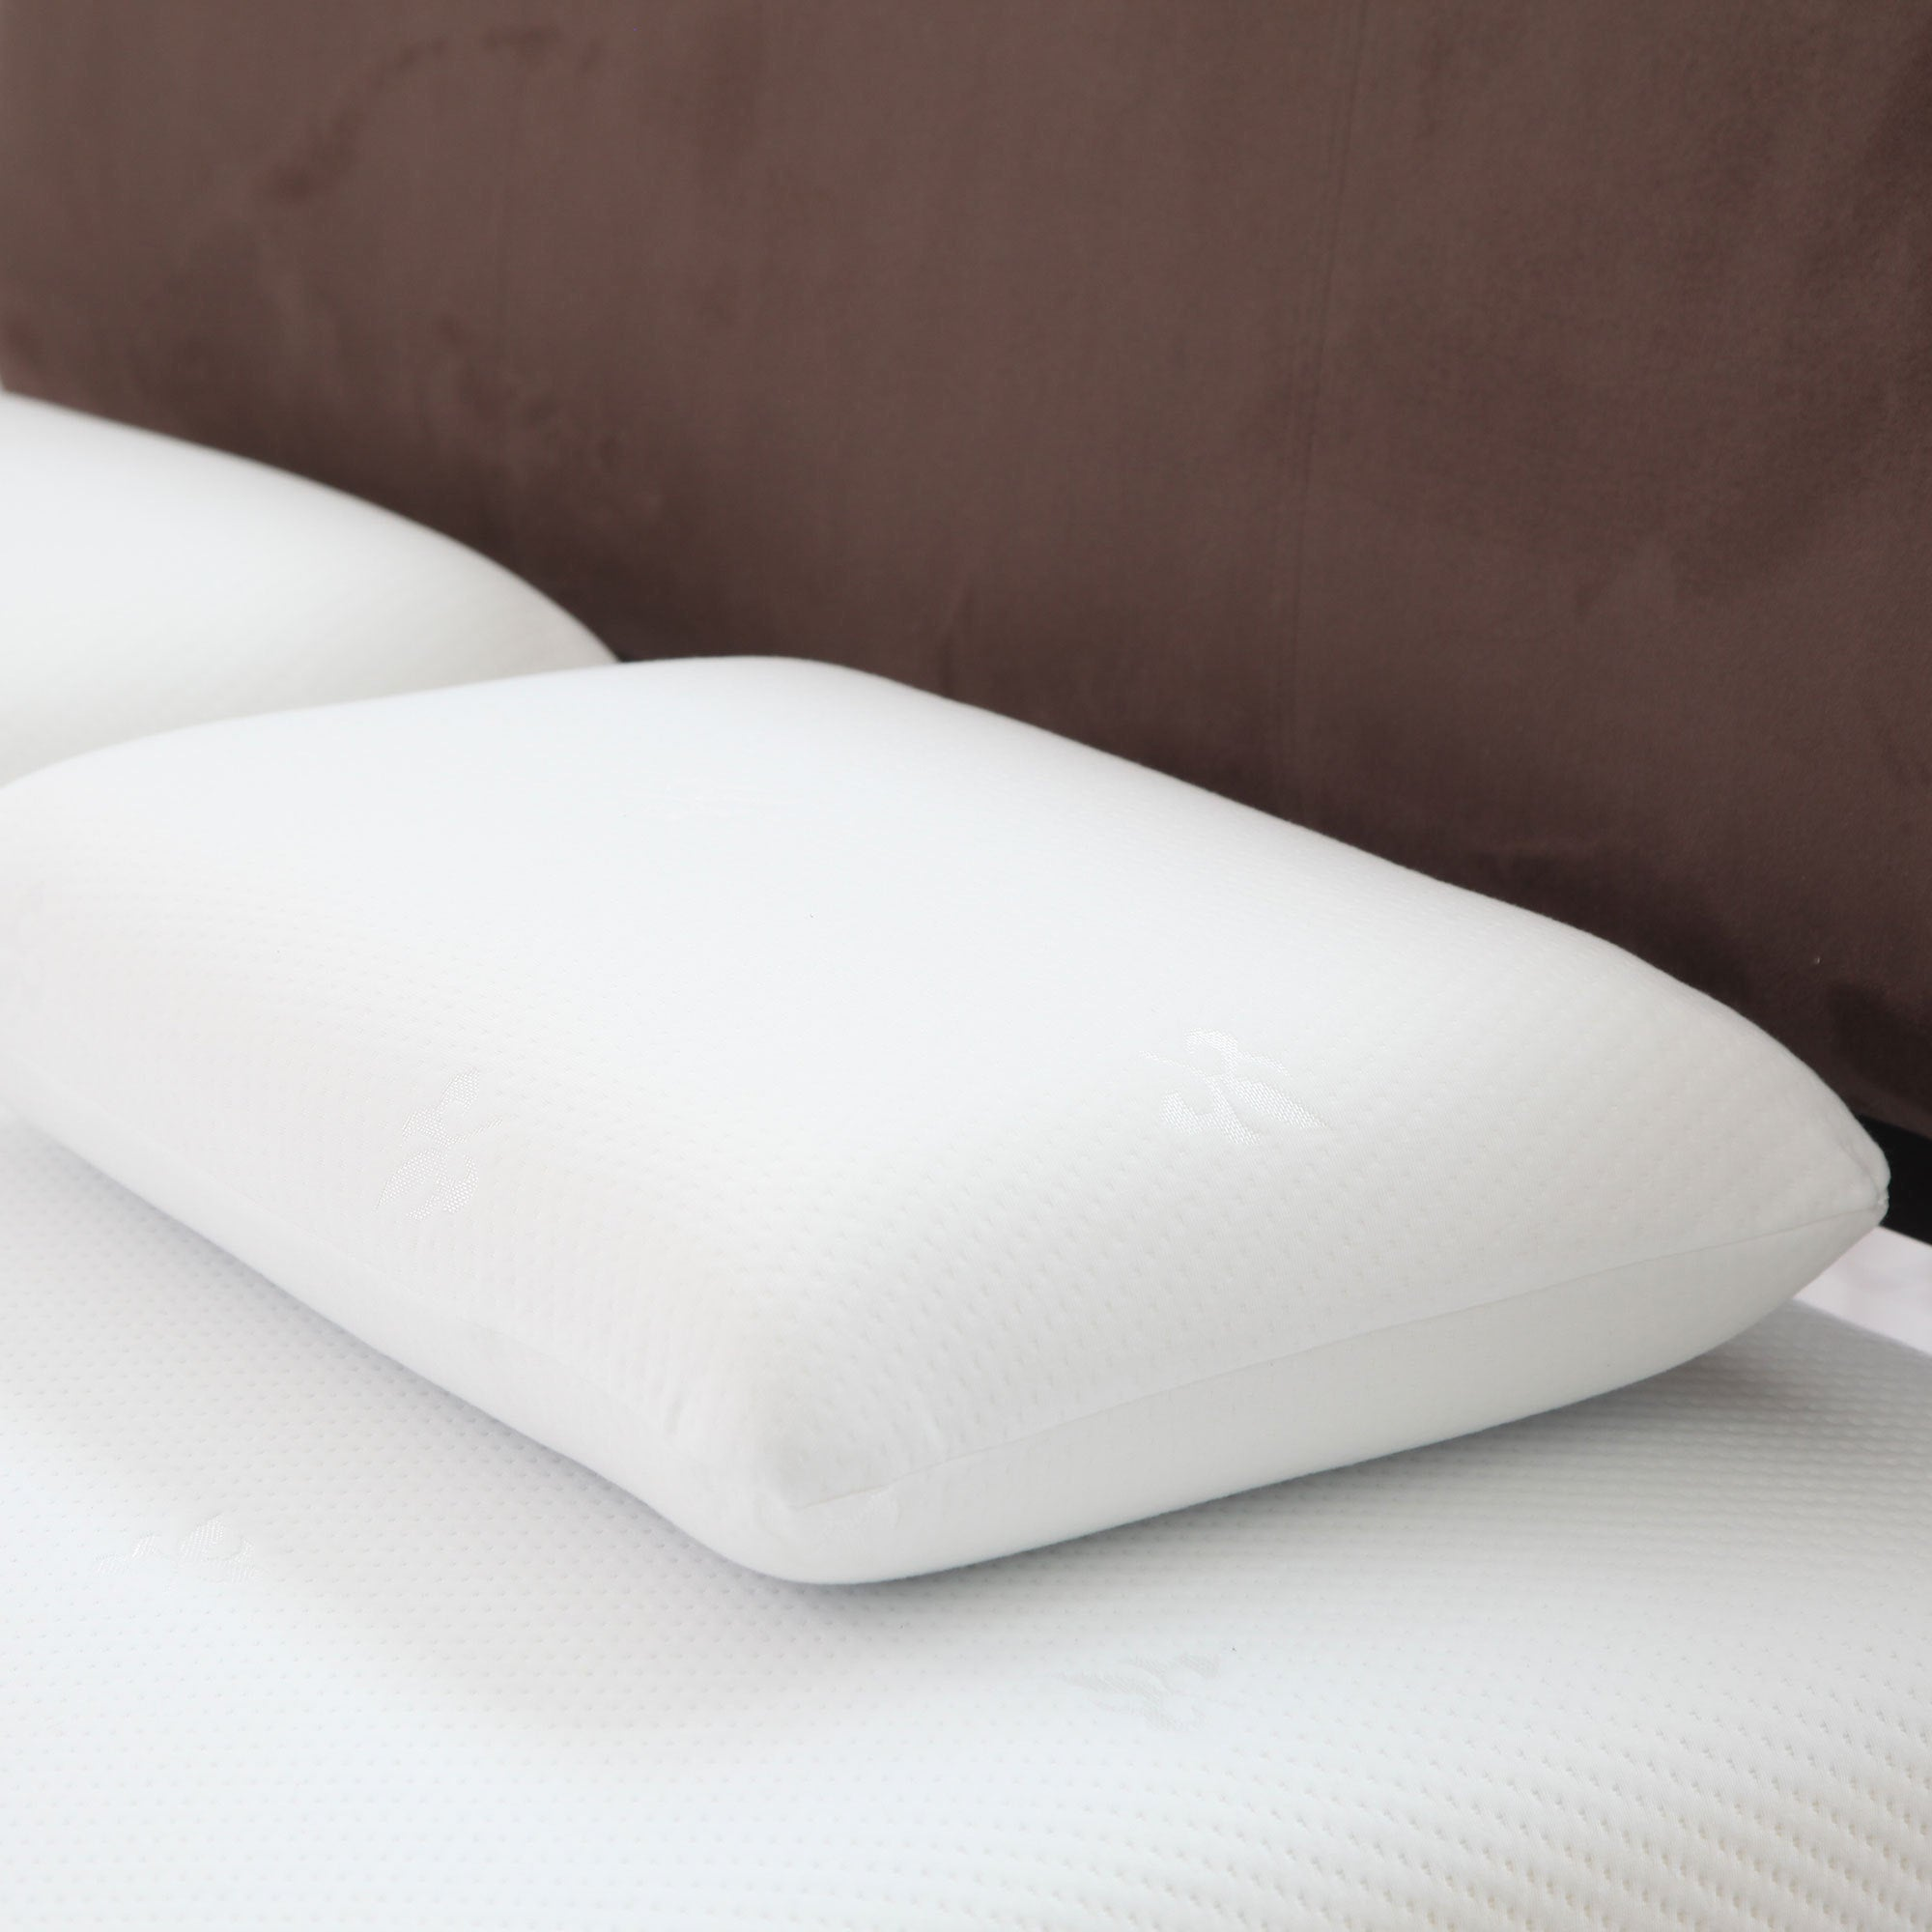 Trademark Windsor Home Comfort Gel Memory Foam Pillow wit...